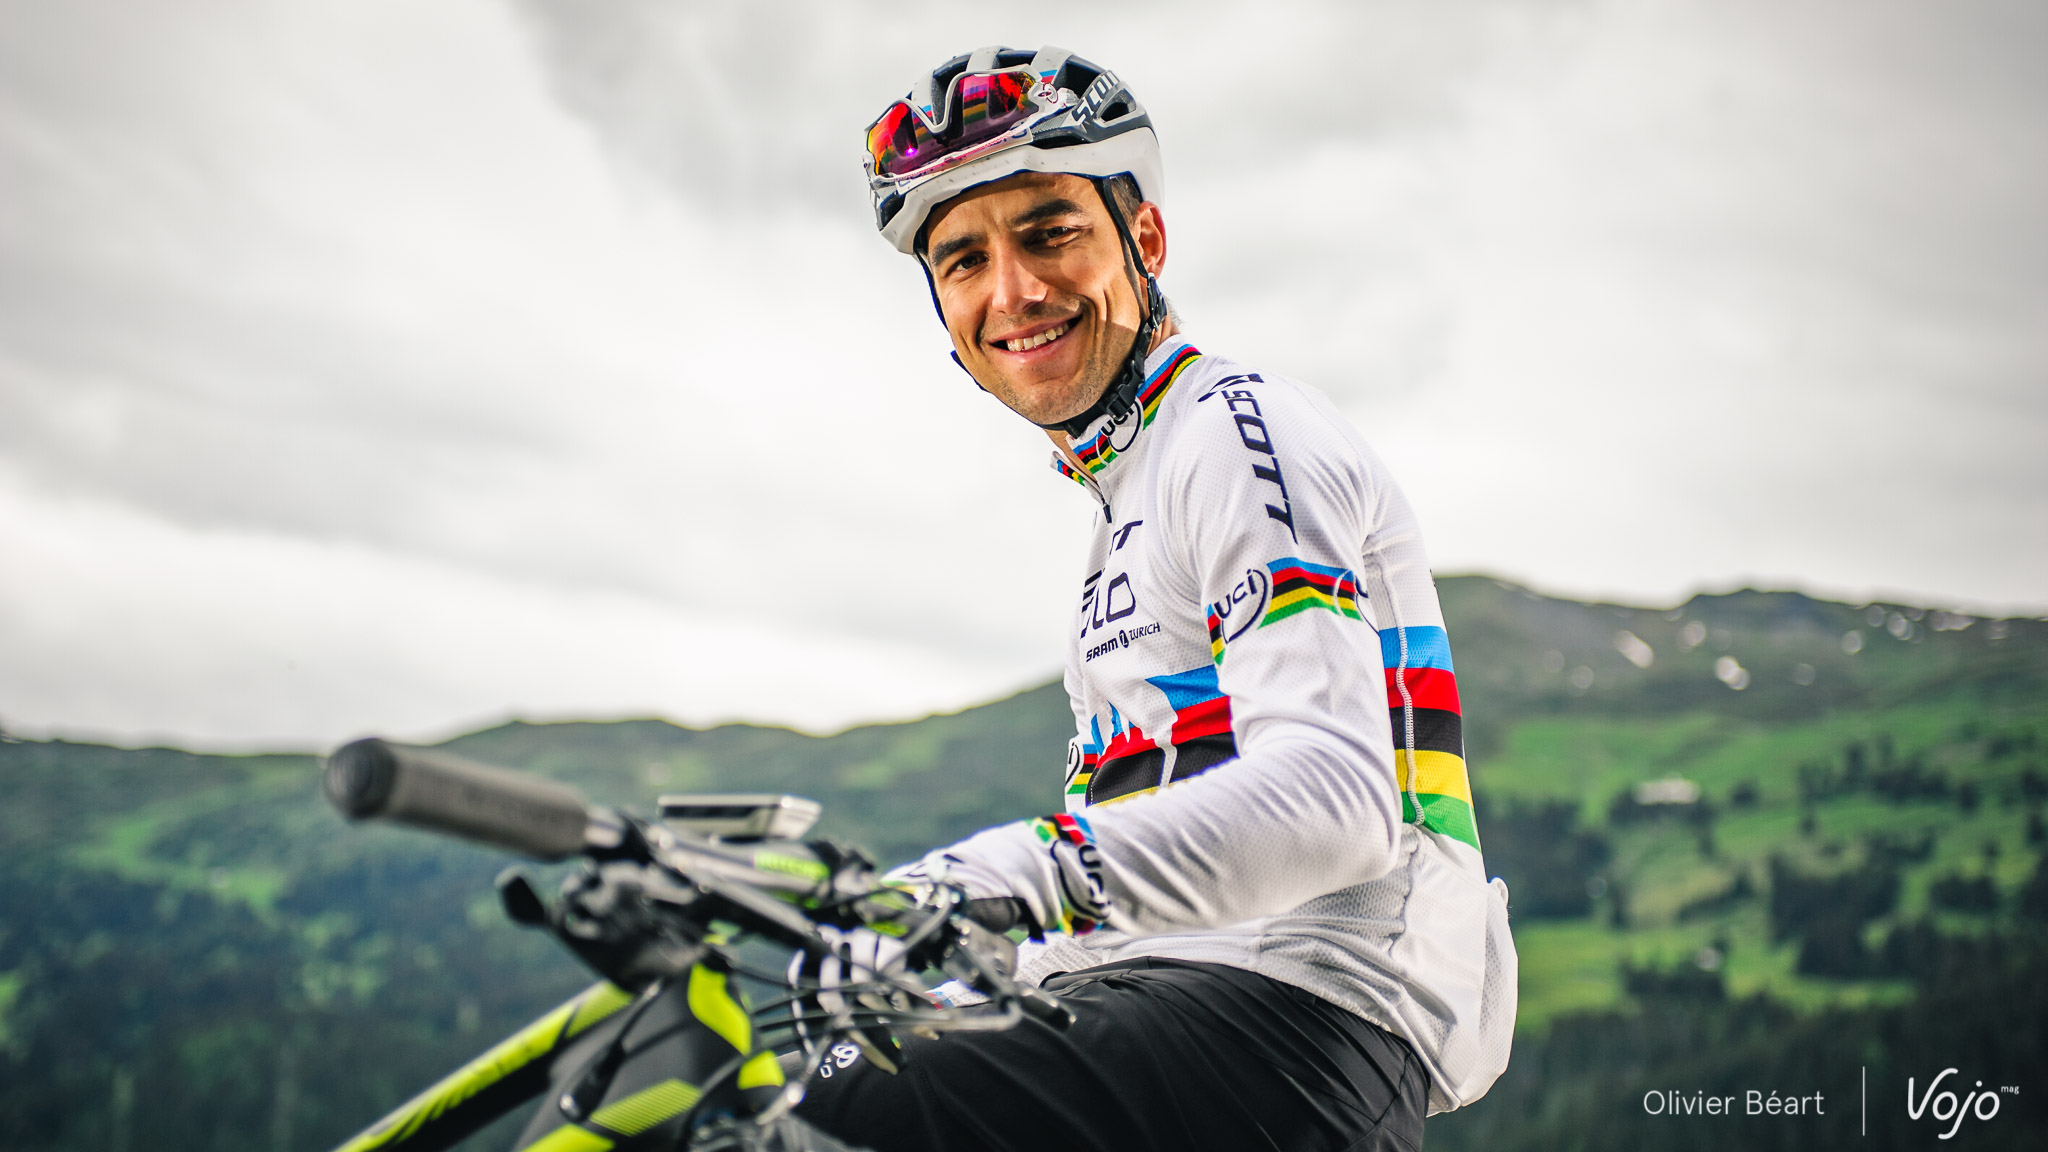 Nino_Schurter_Interview_Scott_Spark_Scale_Portrait_Copyright_OBeart_VojoMag-1